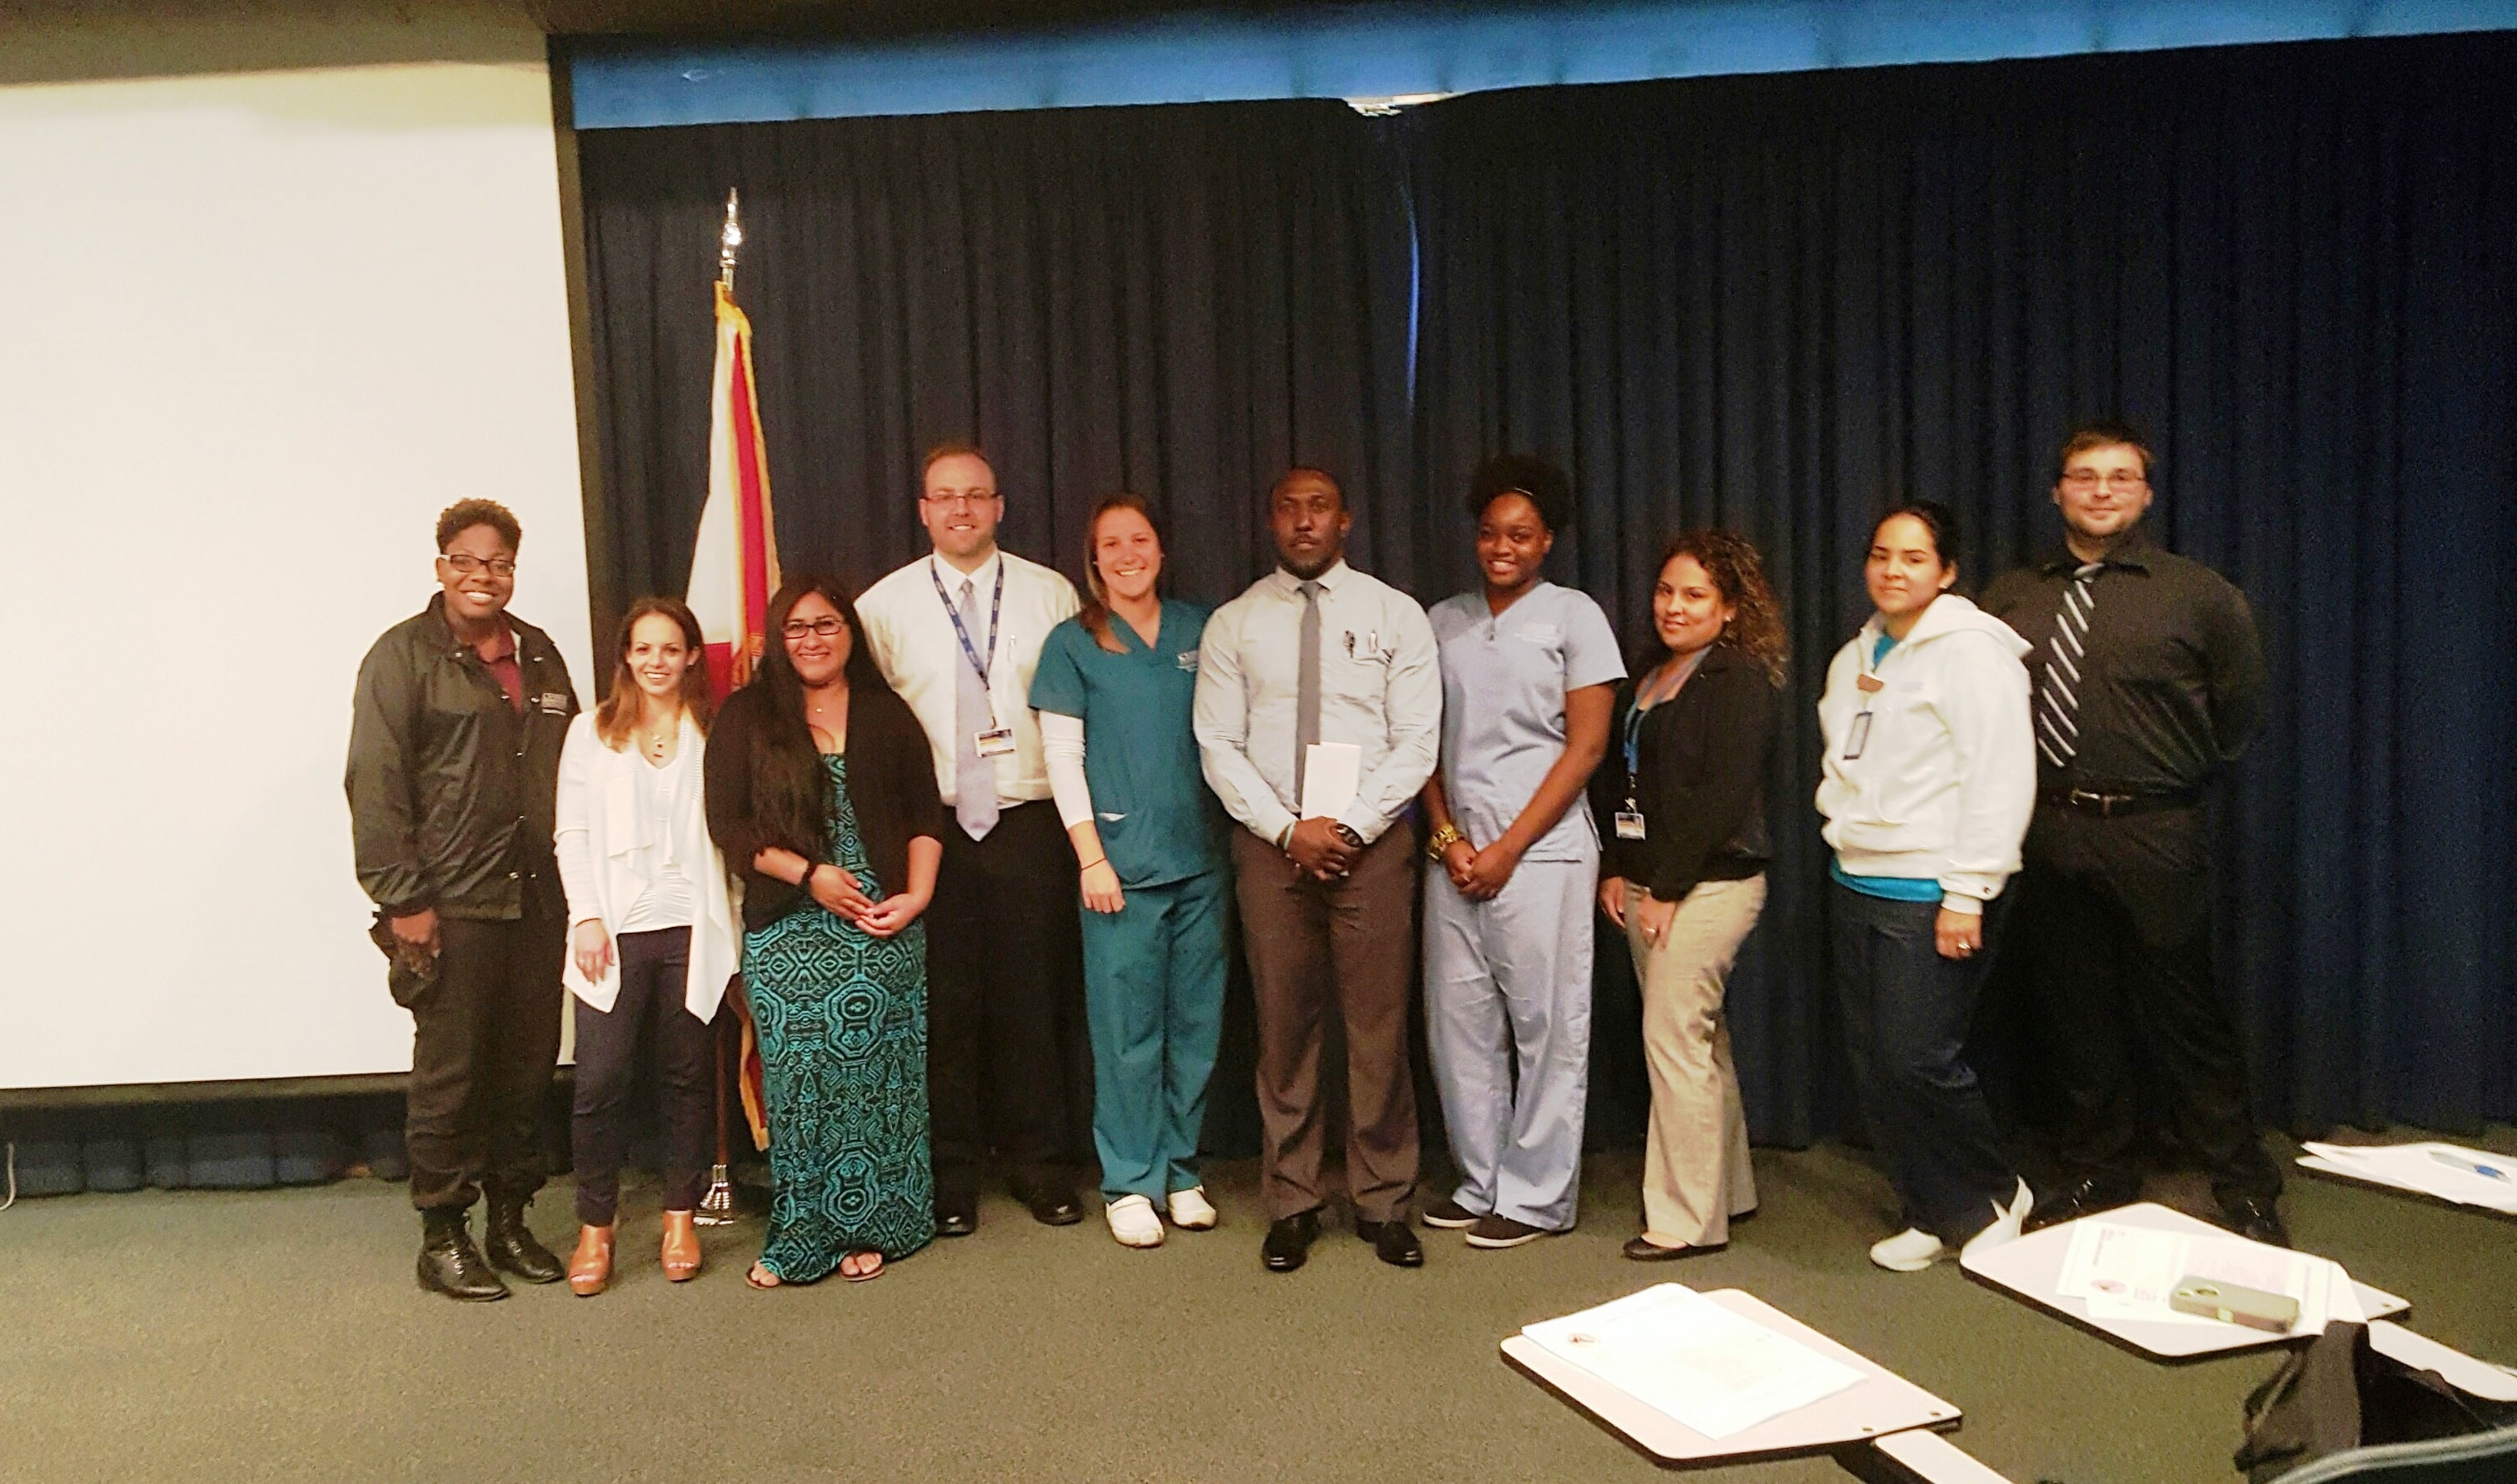 Student Government Association Holds Kick-Off Meeting at Ft. Lauderdale Campus